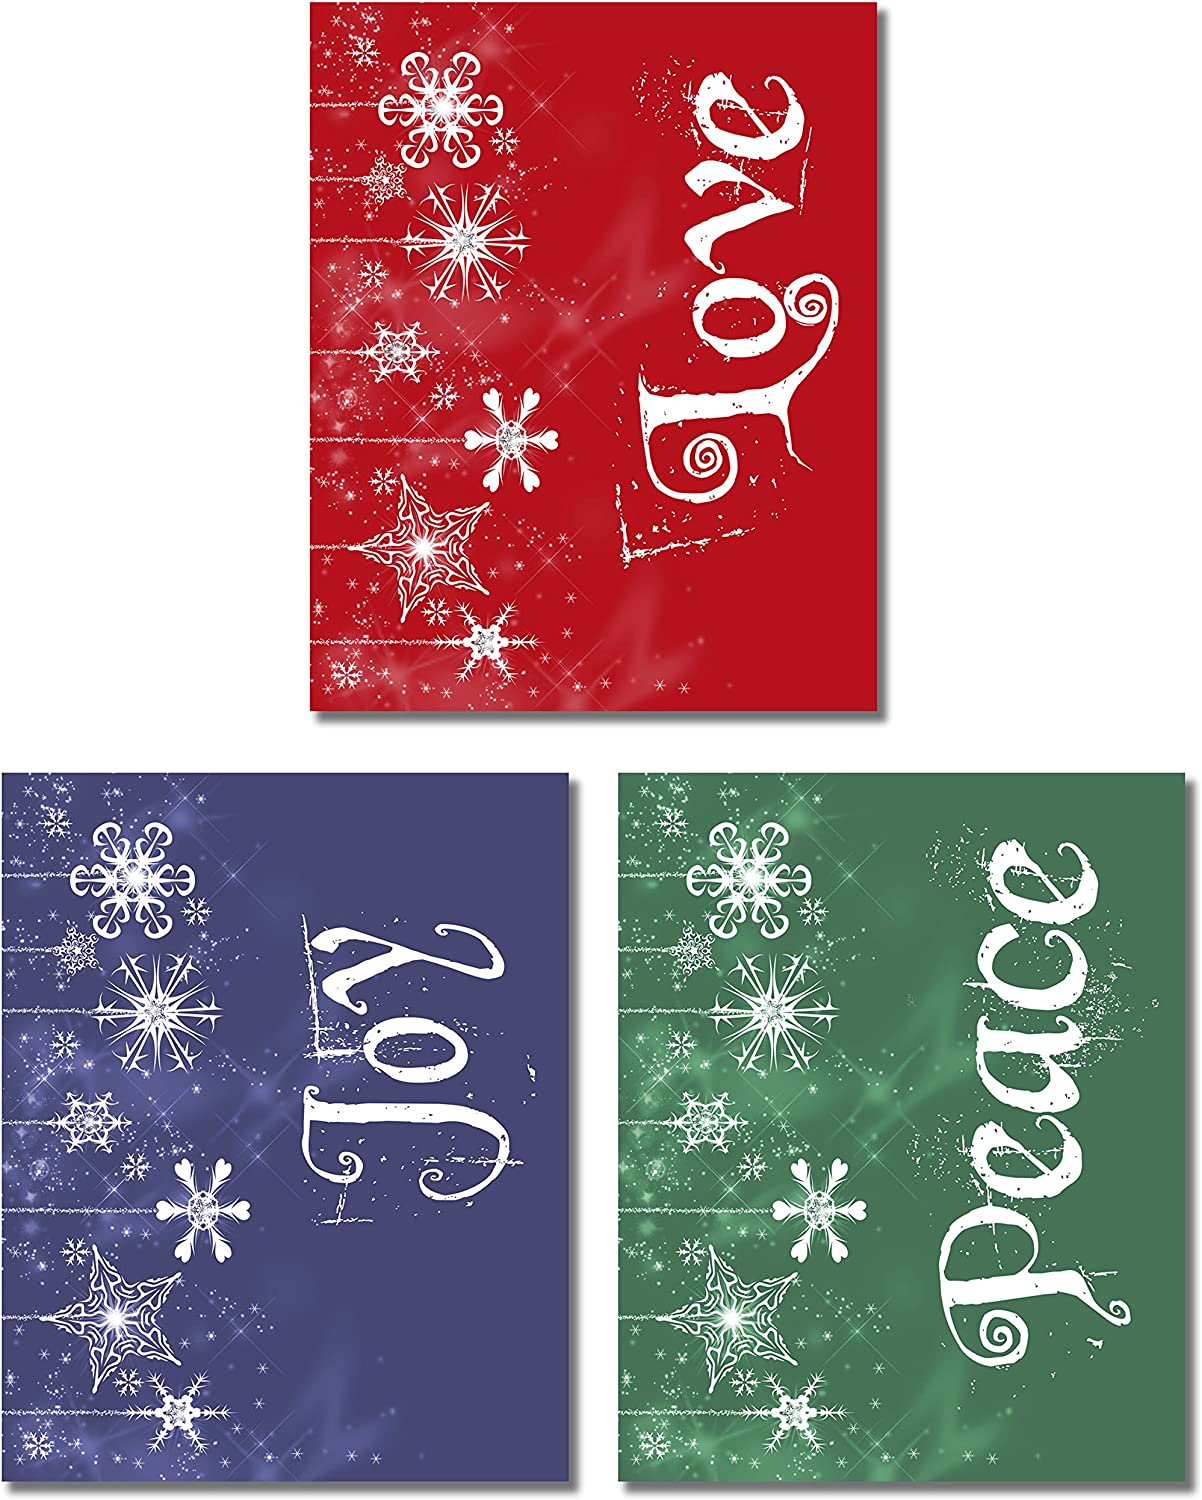 Peace Joy Love Wall Art Photos - Set of 3 (8 inches x 10 inches) Prints - Christmas Holiday Decor